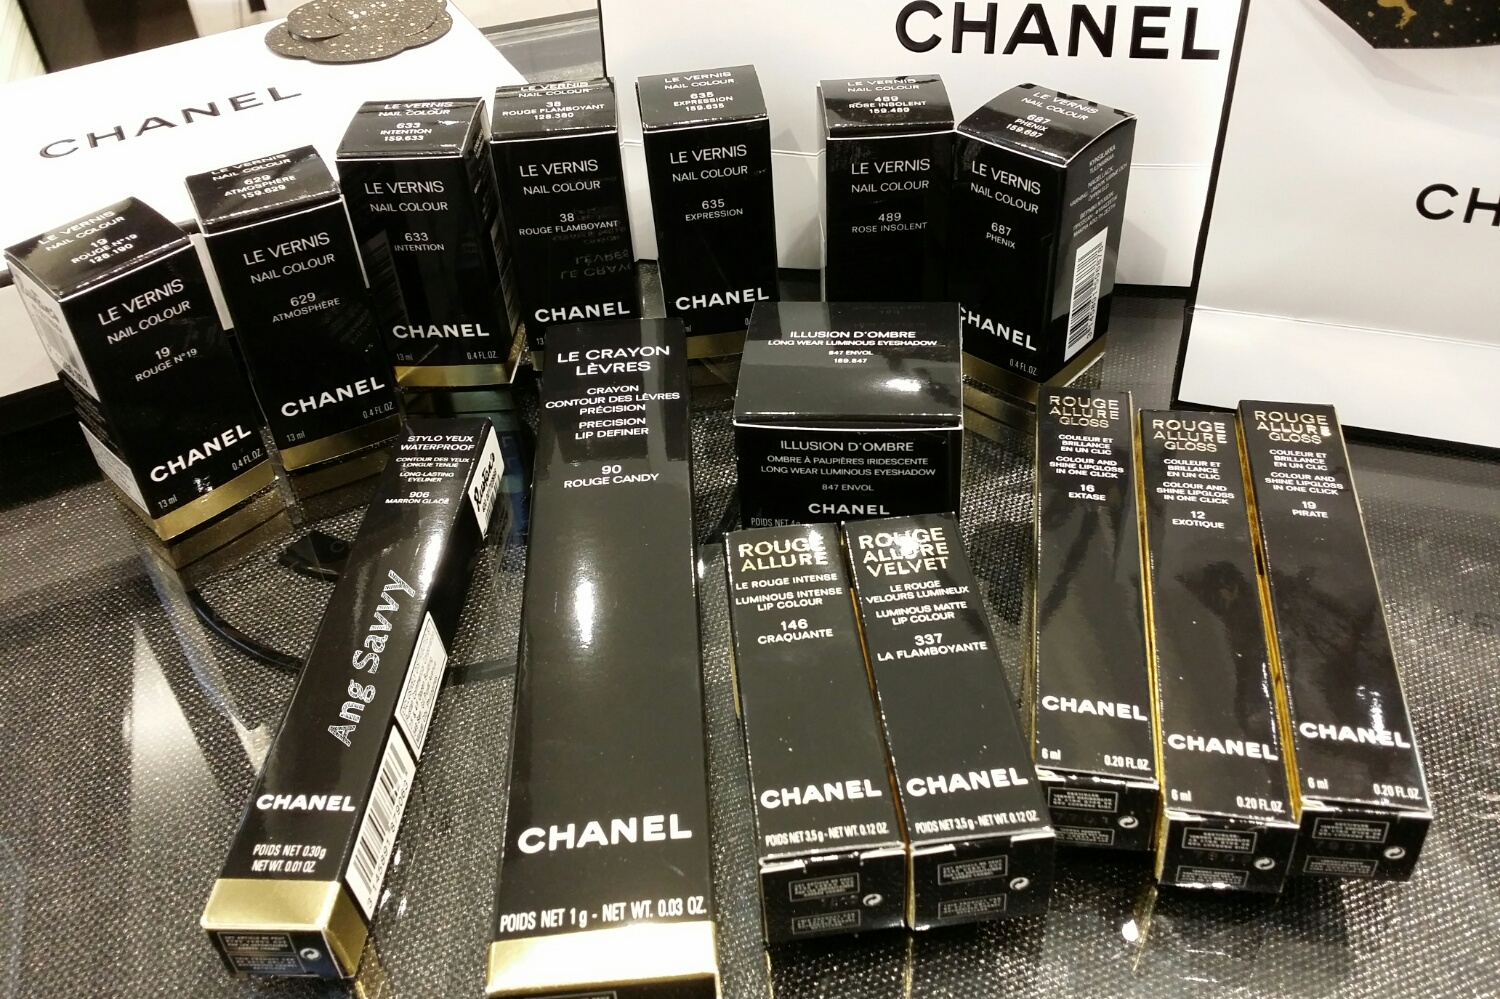 Chanel Makeup Haul